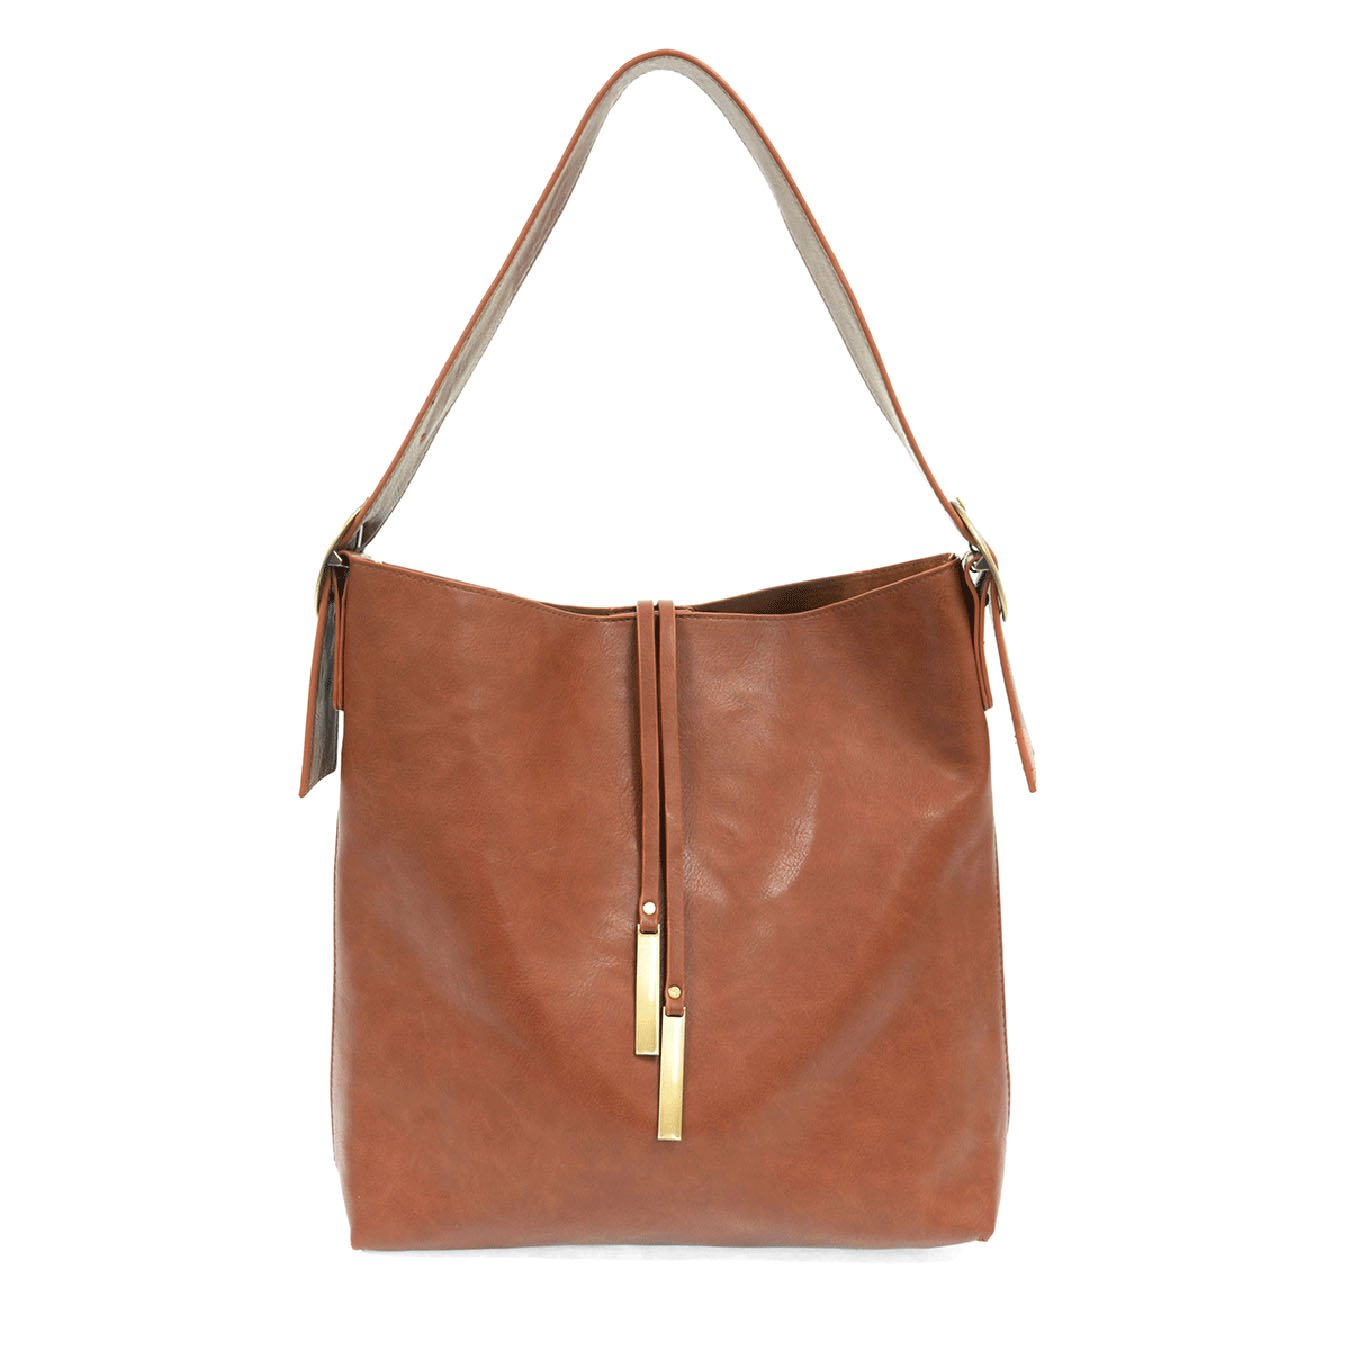 Cognac Jillian Hobo Handbag with Tassel